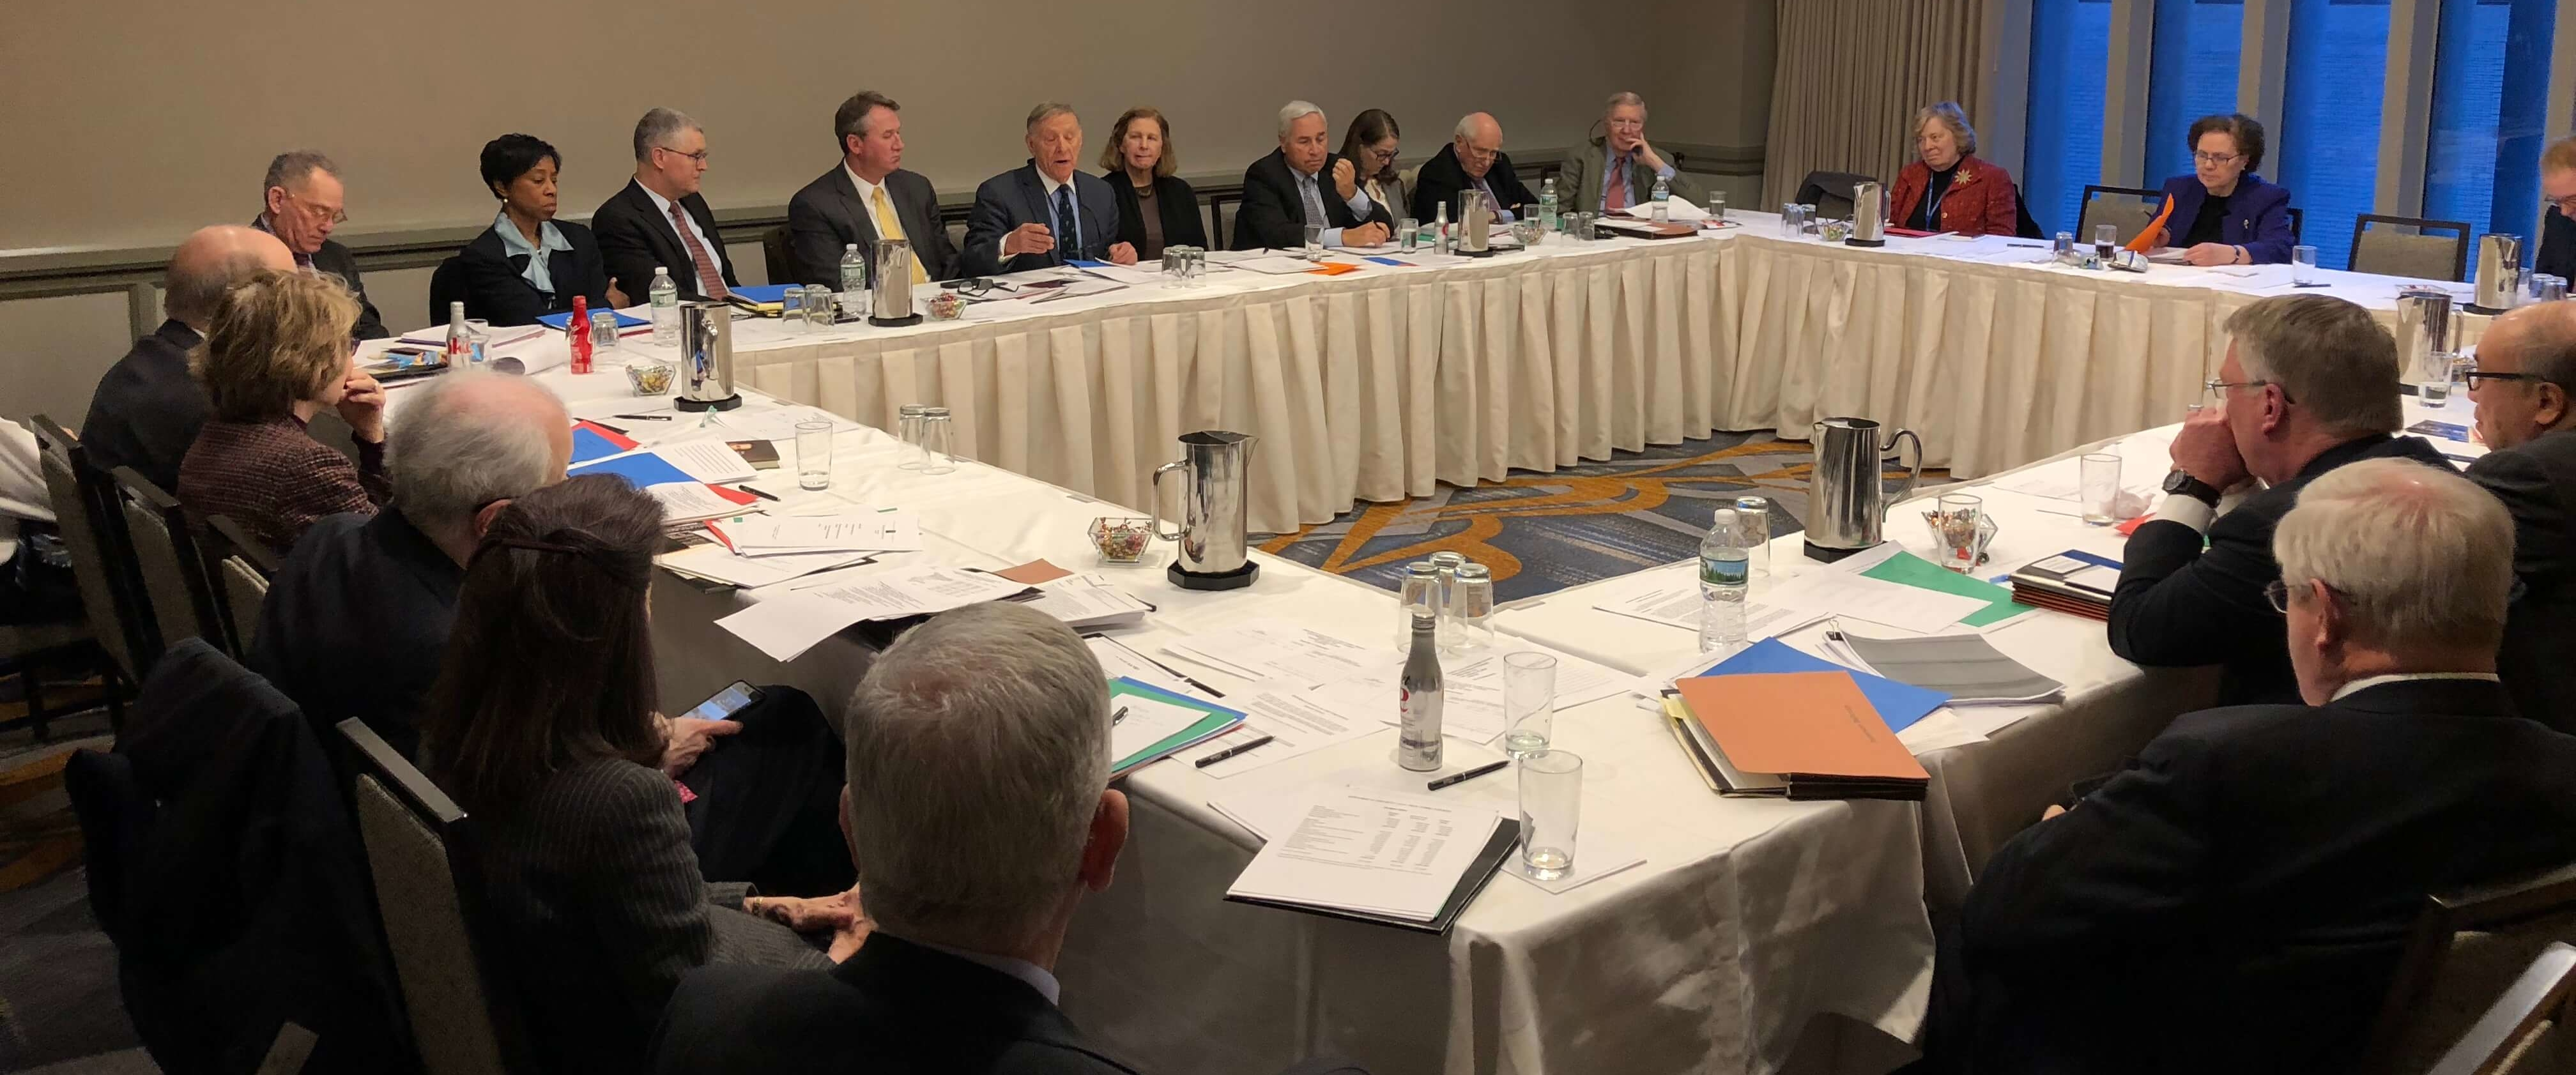 The Board of Trustees at the Society's Annual Meeting in 2018